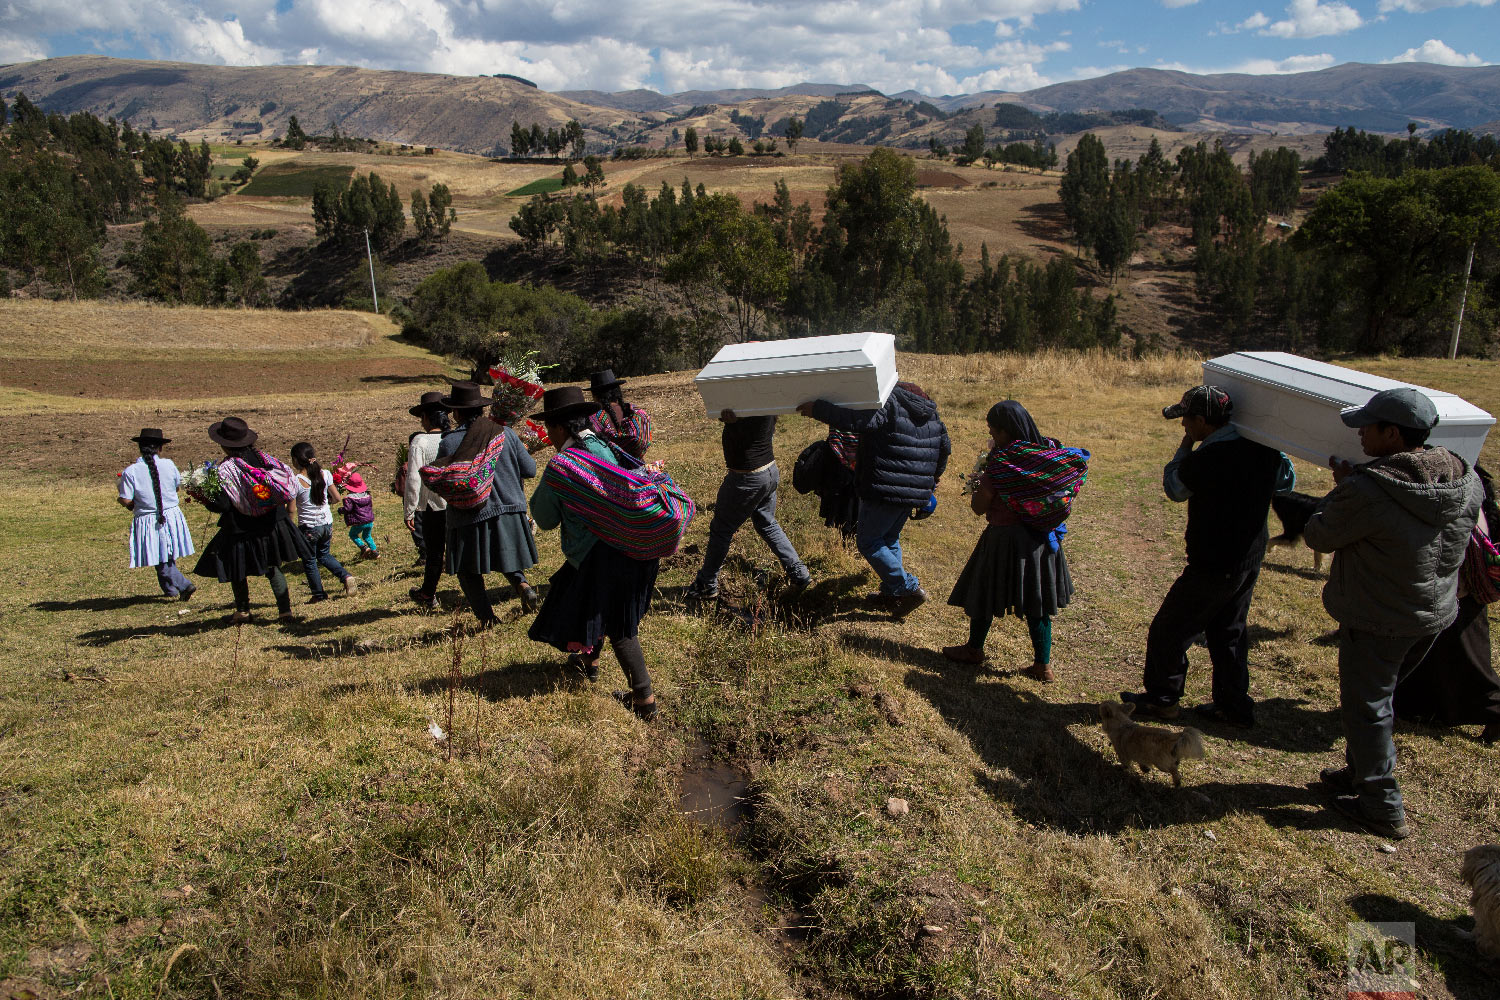 In this Aug. 15, 2018 photo, villagers carry the remains of people killed by the Shining Path guerrillas in 1984, during their proper burial in Tantana, in Peru's Ayacucho province. (AP Photo/Rodrigo Abd)